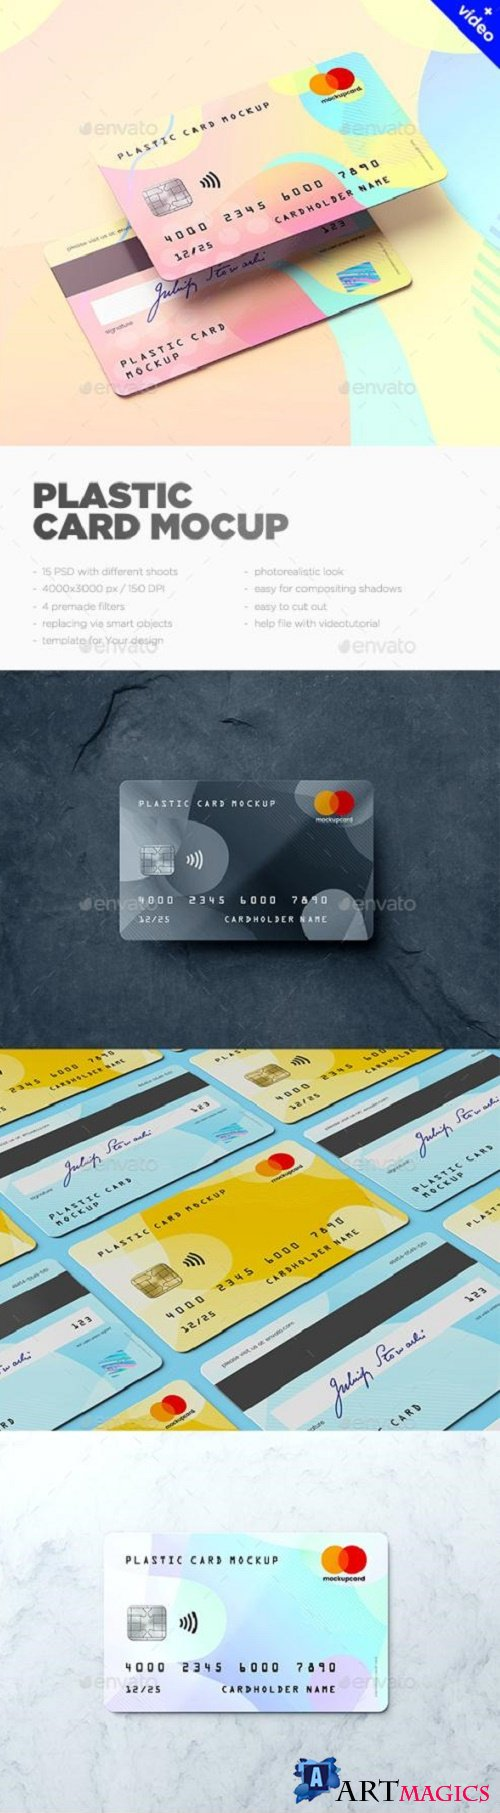 Plastic Card / Bank Card MockUp - 22352639